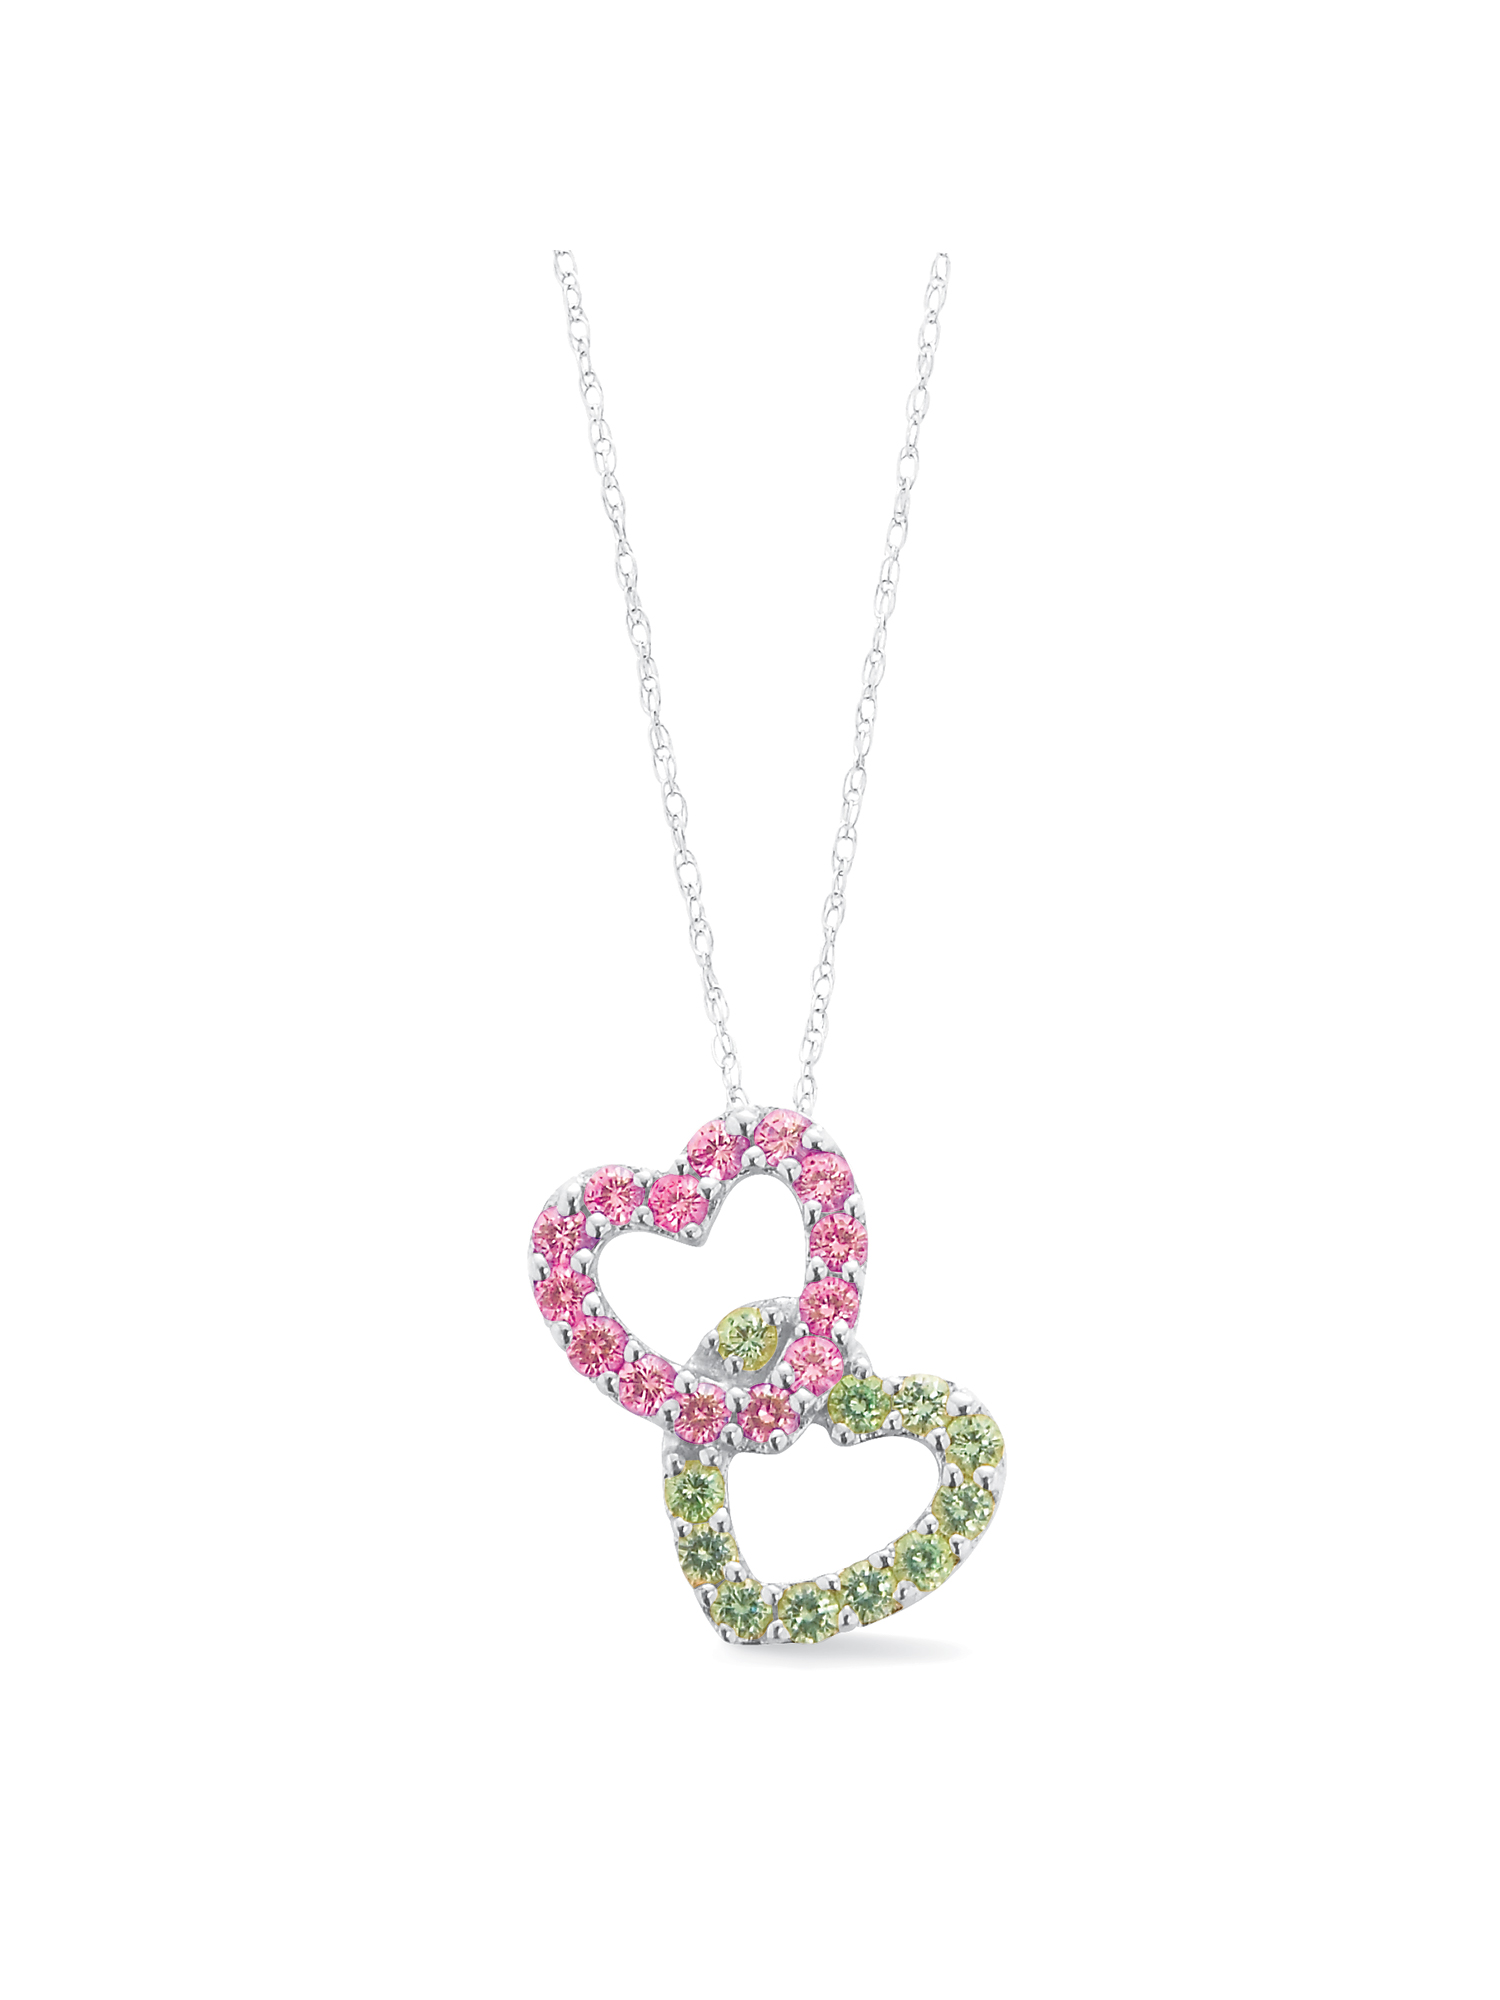 Keepsake Personalized Family Jewelry Building Hearts Birthstone Pendant available in Sterling Silver, Yellow and White Gold